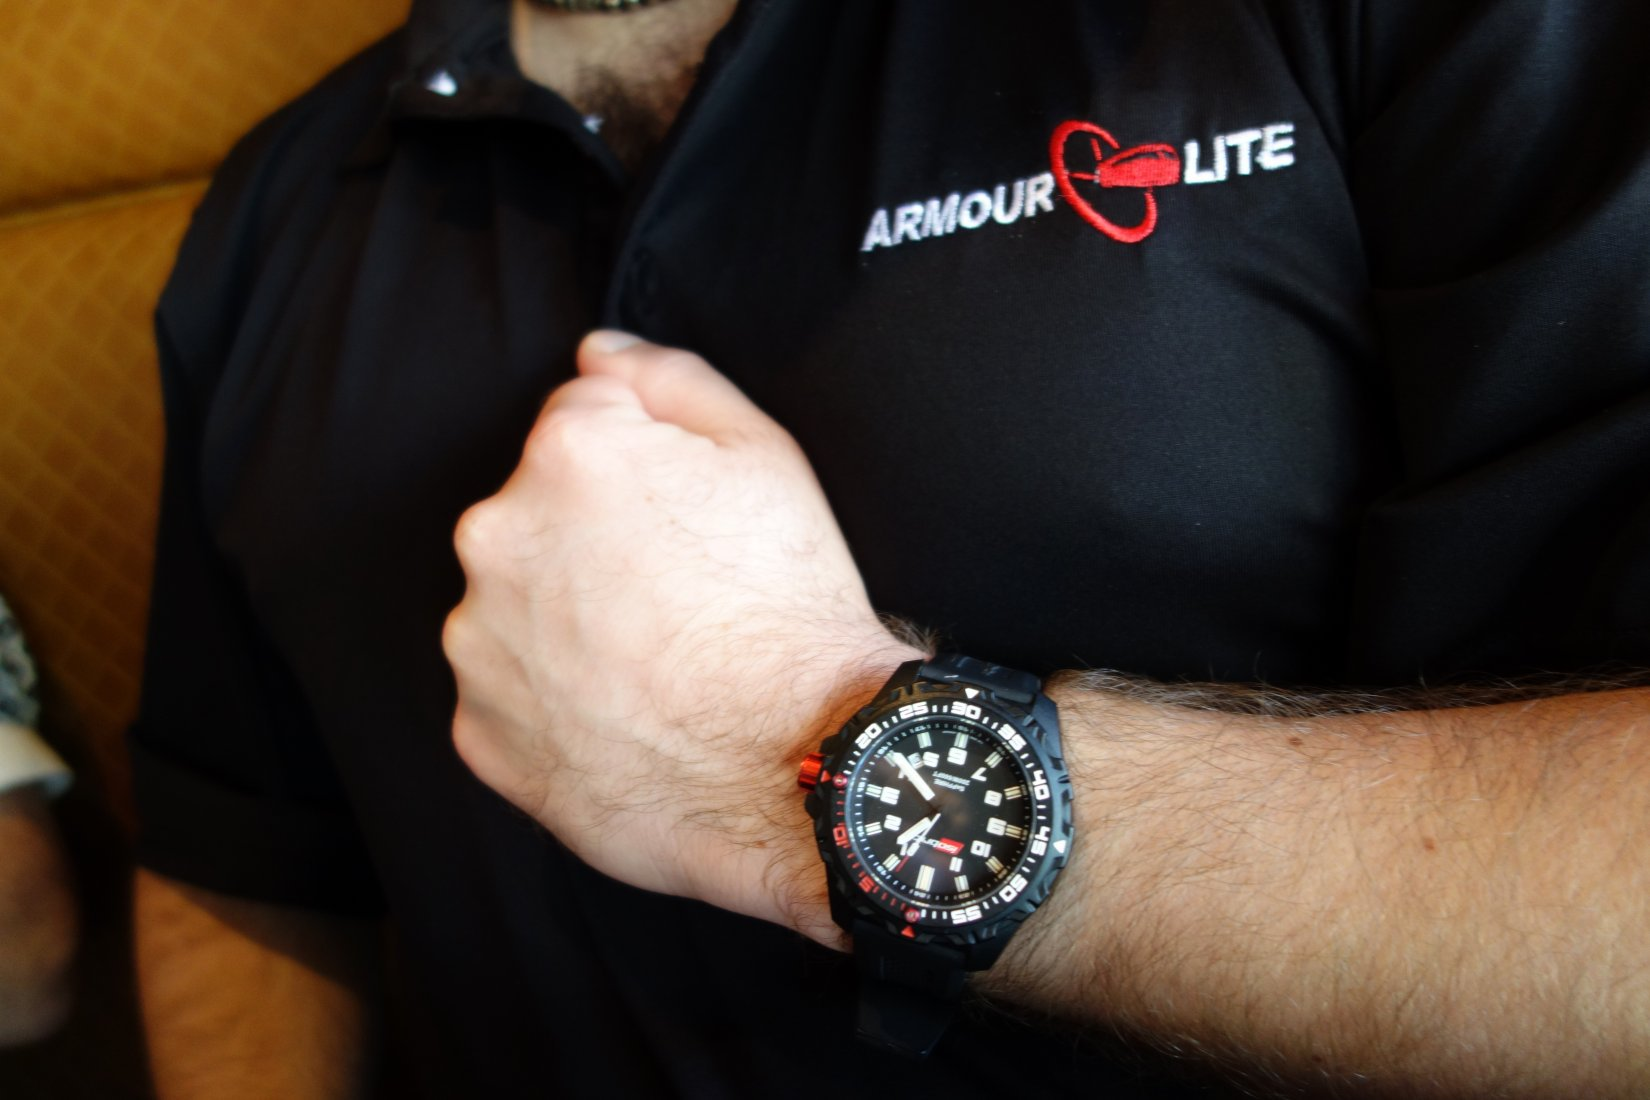 ArmourLite IsoBrite Tactical Watch Diving Watch T100 Tritium H3 Illumination Miami David Crane DefenseReview.com DR 5 ArmourLite IsoBrite Hard Use Tactical Watch/Diving Watch with T100 Tritium Illumination for Military and Law Enforcement Tactical Operations, Maritime Operations and Civilian Tactical Shooting (Video!)